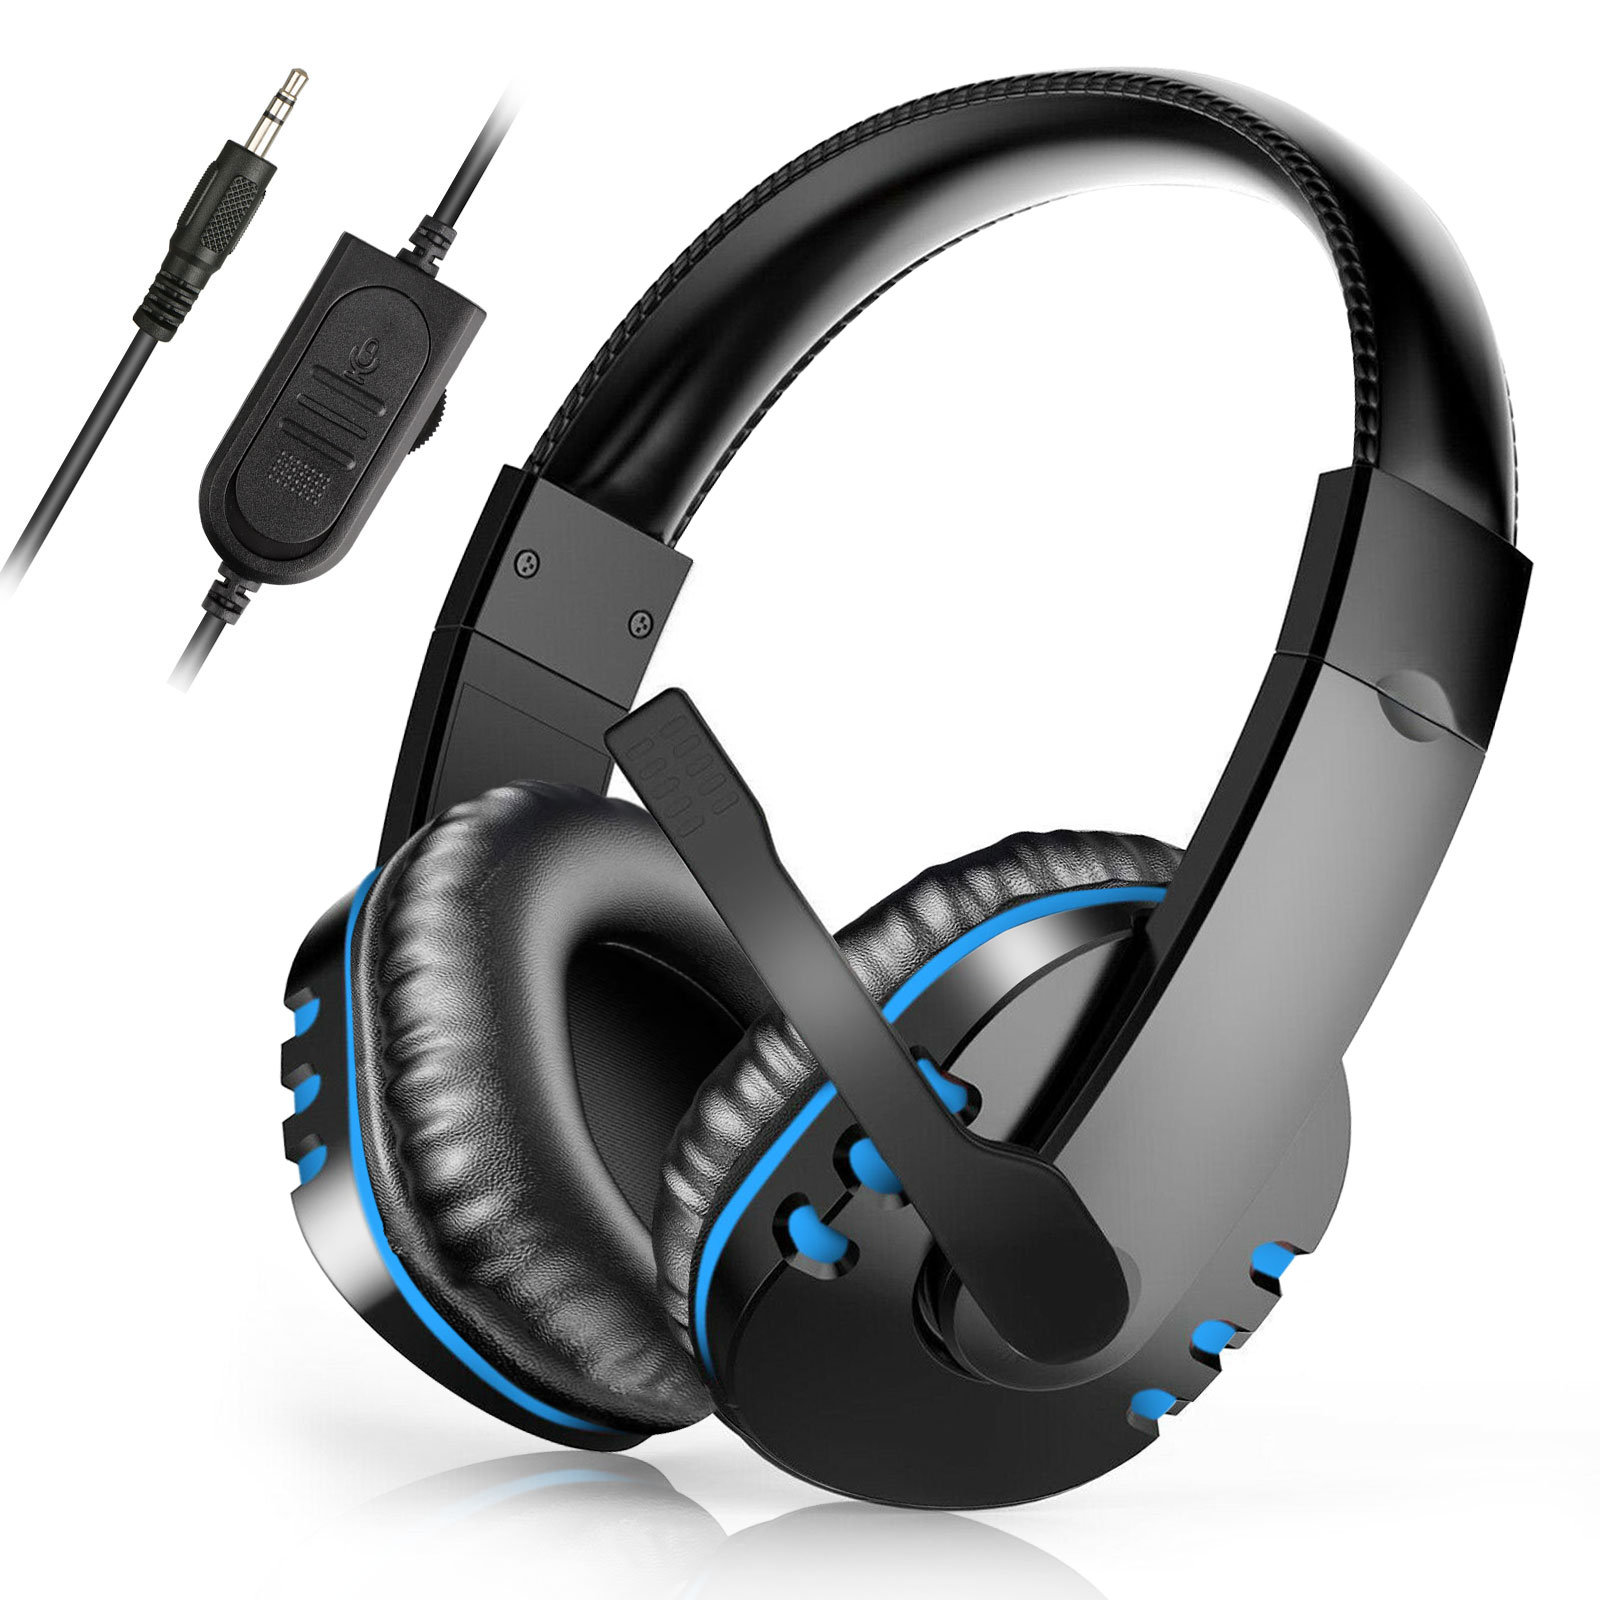 Soft Memory Earmuffs for Laptop Mac Smartphone Bass Surround Noise Cancelling Over Ear Headphones with Mic TeaBoy Stereo Bluetooth Gaming Headset for PS4 PC Xbox One Controller LED Light